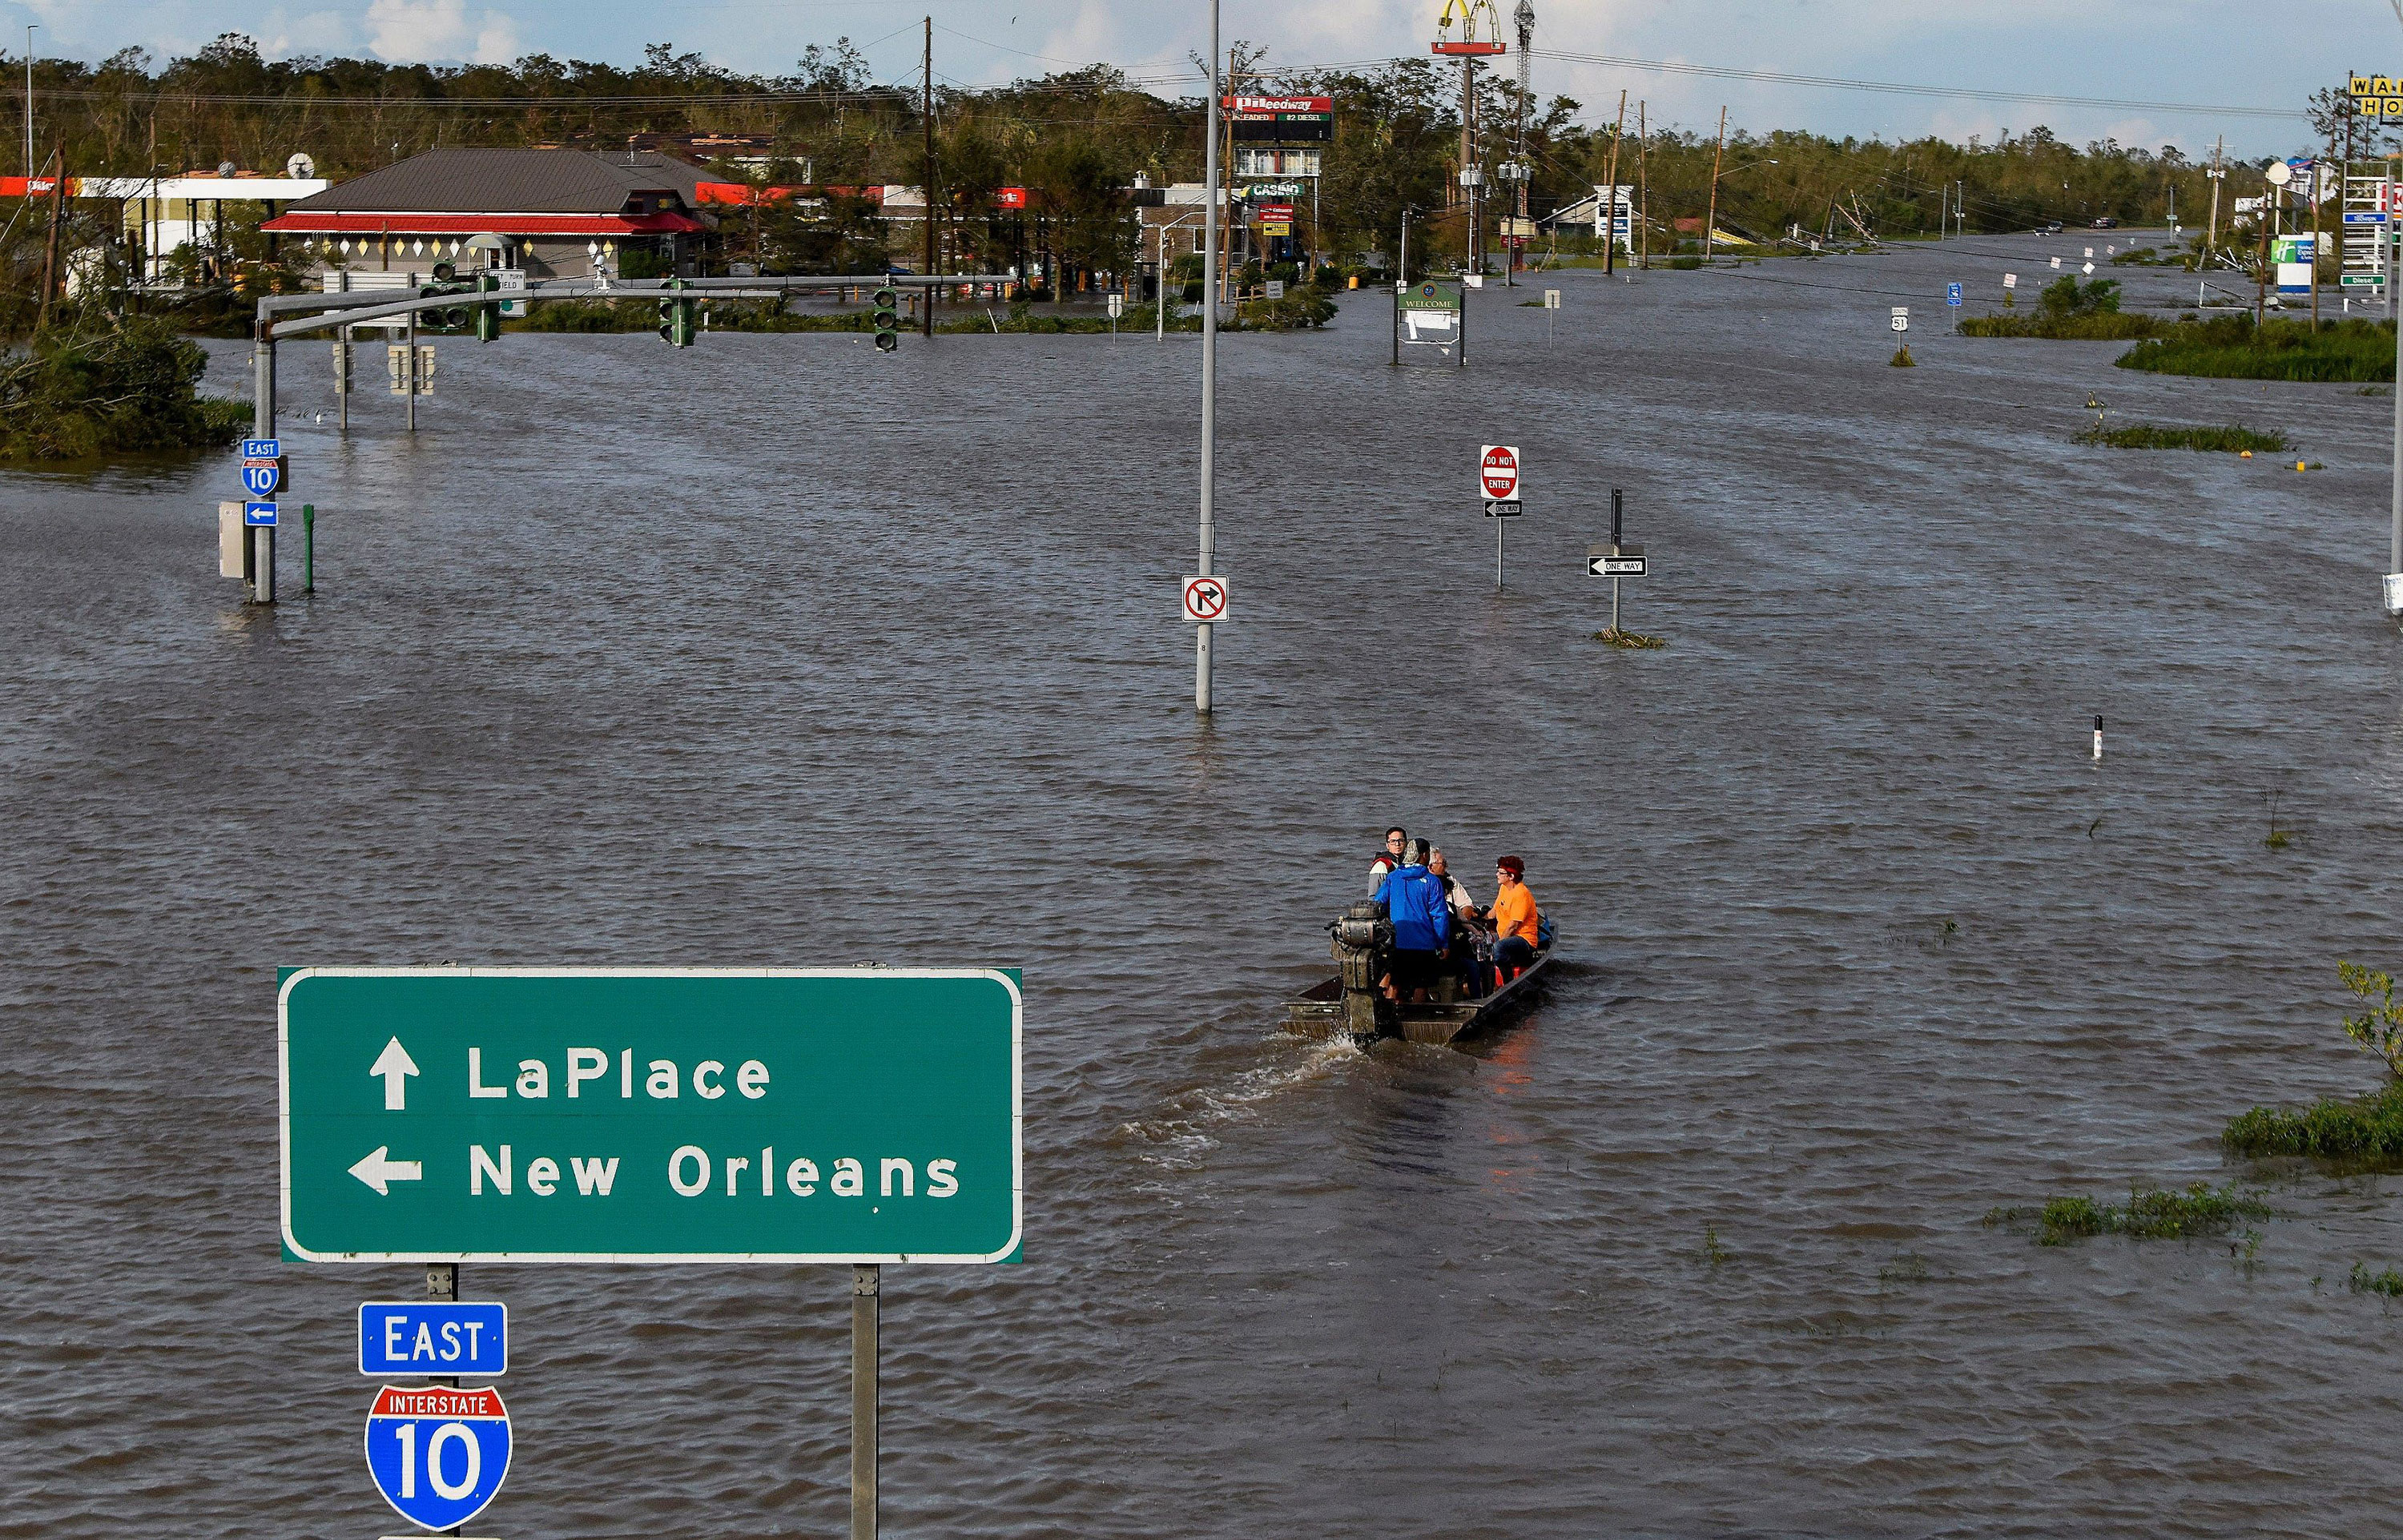 Highway 51 is flooded after Hurricane Ida struck LaPlace, Louisiana.